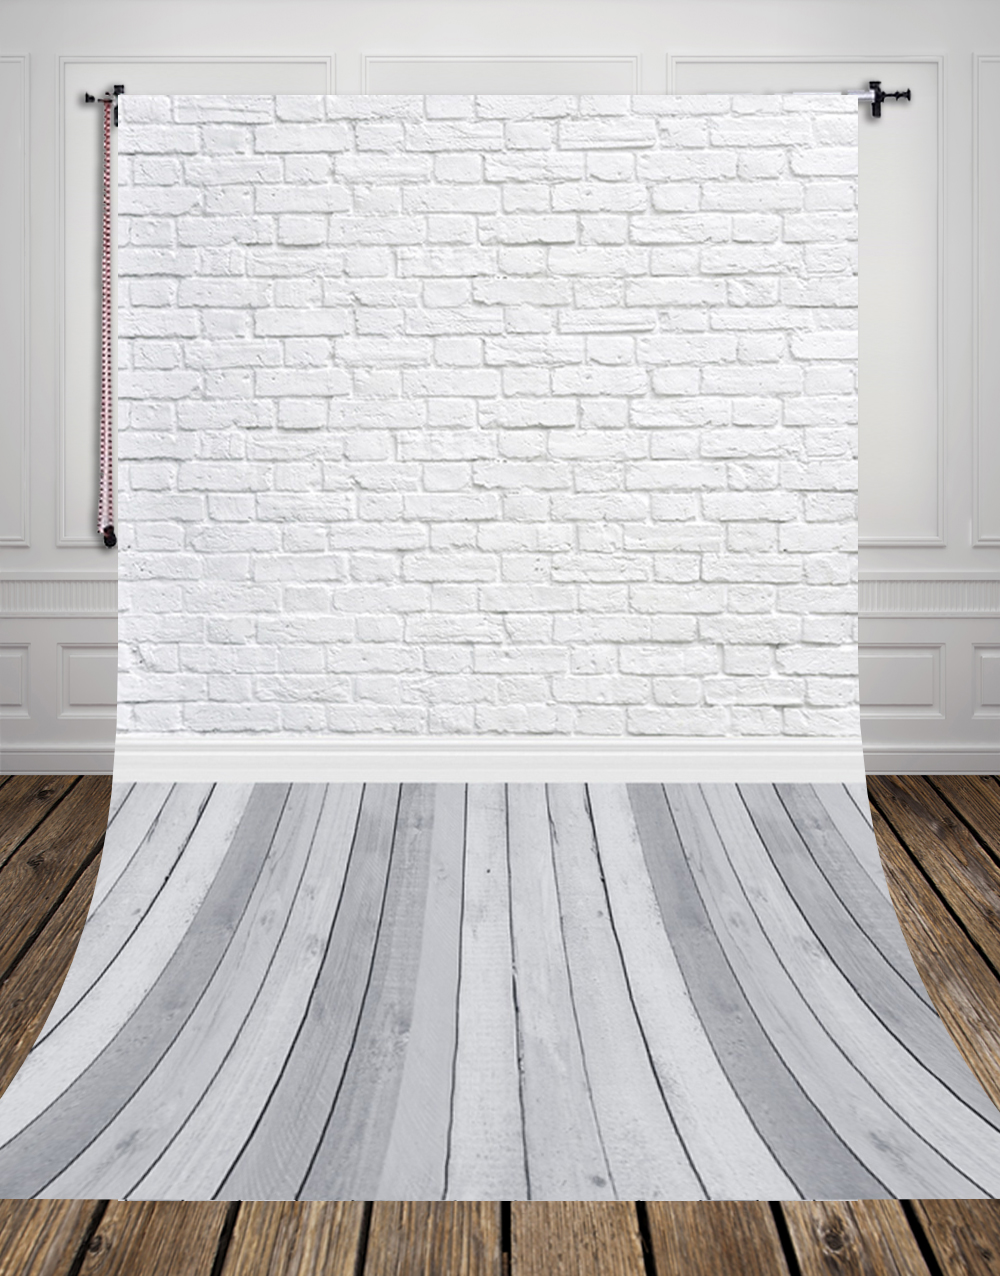 Grey Wood Floor Studio Photo Background Vinyl White Bricks Photography Backdrop for Pets Cakes Photos D-9713 1pc beautiful white wood wall background vinyl wall floor photography backdrop shooting photo studio prop 1 5x2 1m mayitr